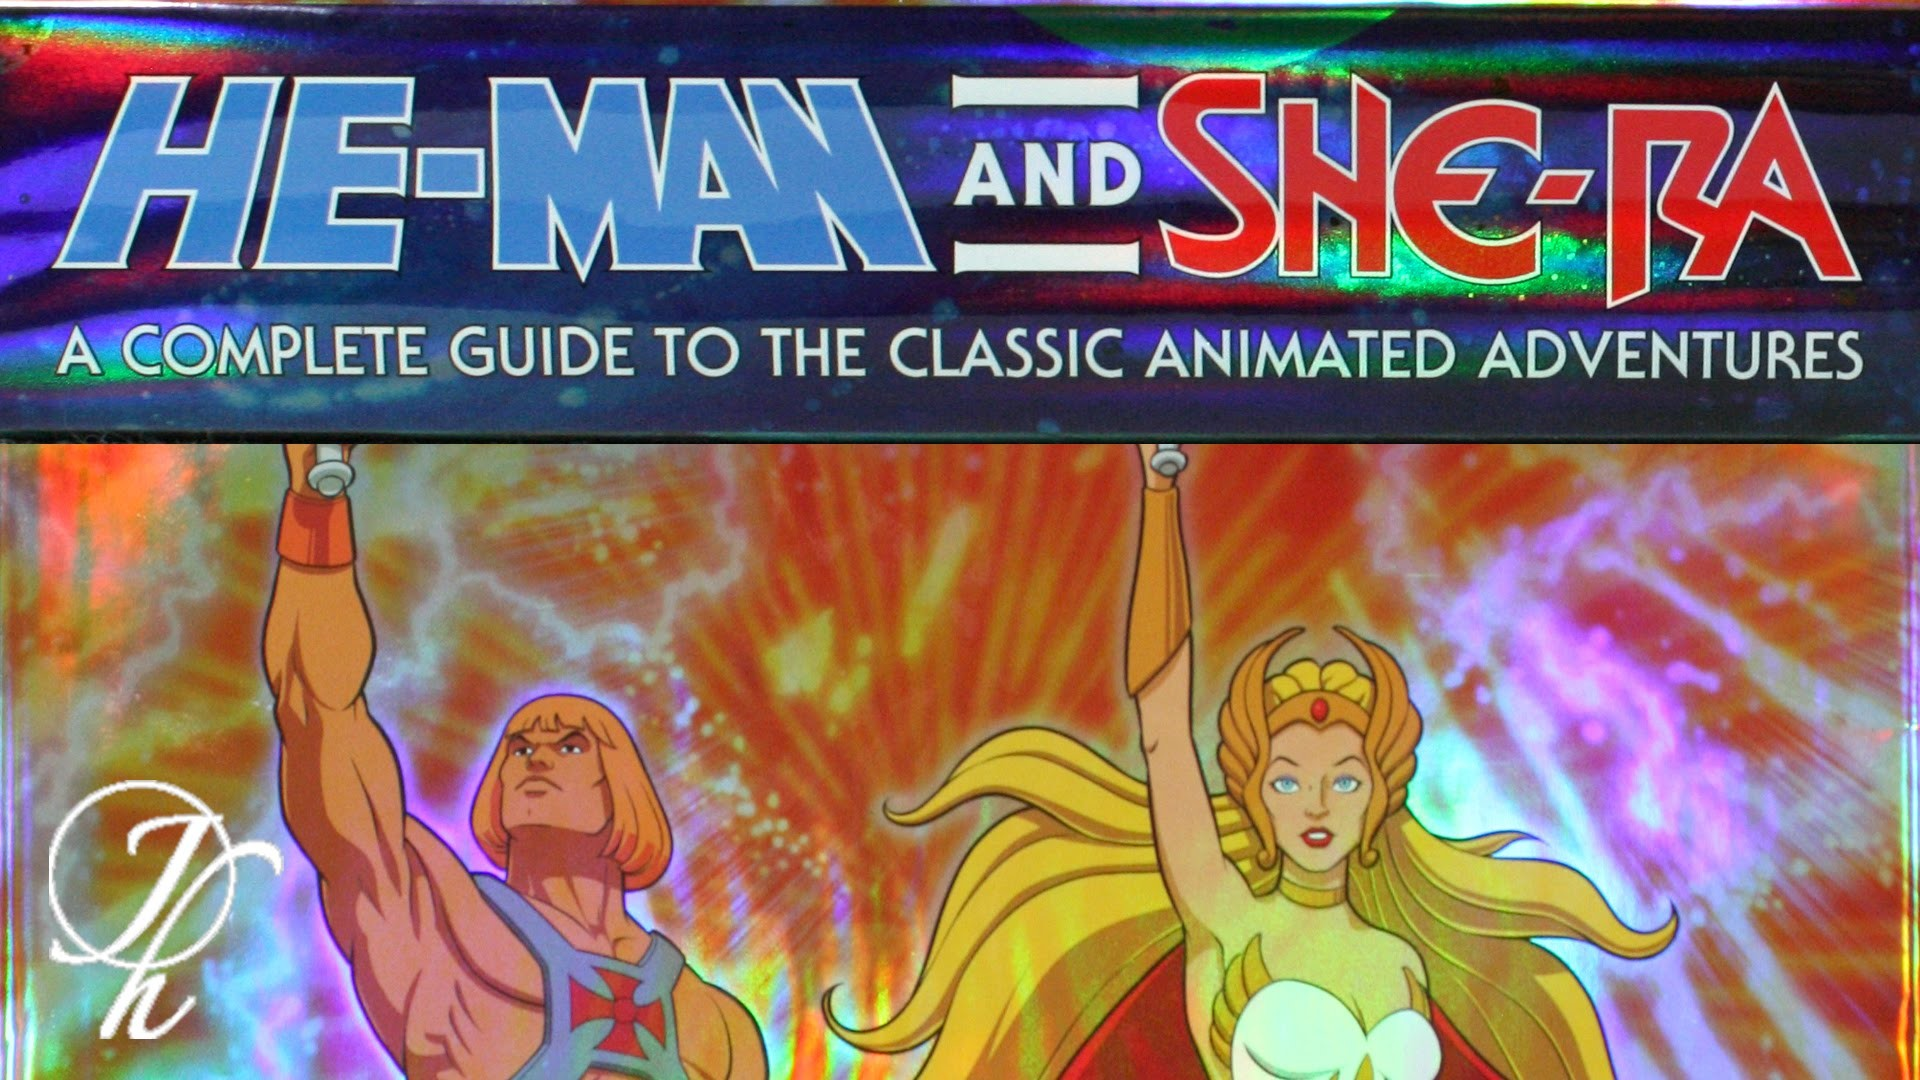 Res: 1920x1080, He-Man and She-Ra: A Complete Guide to the Classic Animated Adventures  LIMITED EDITION